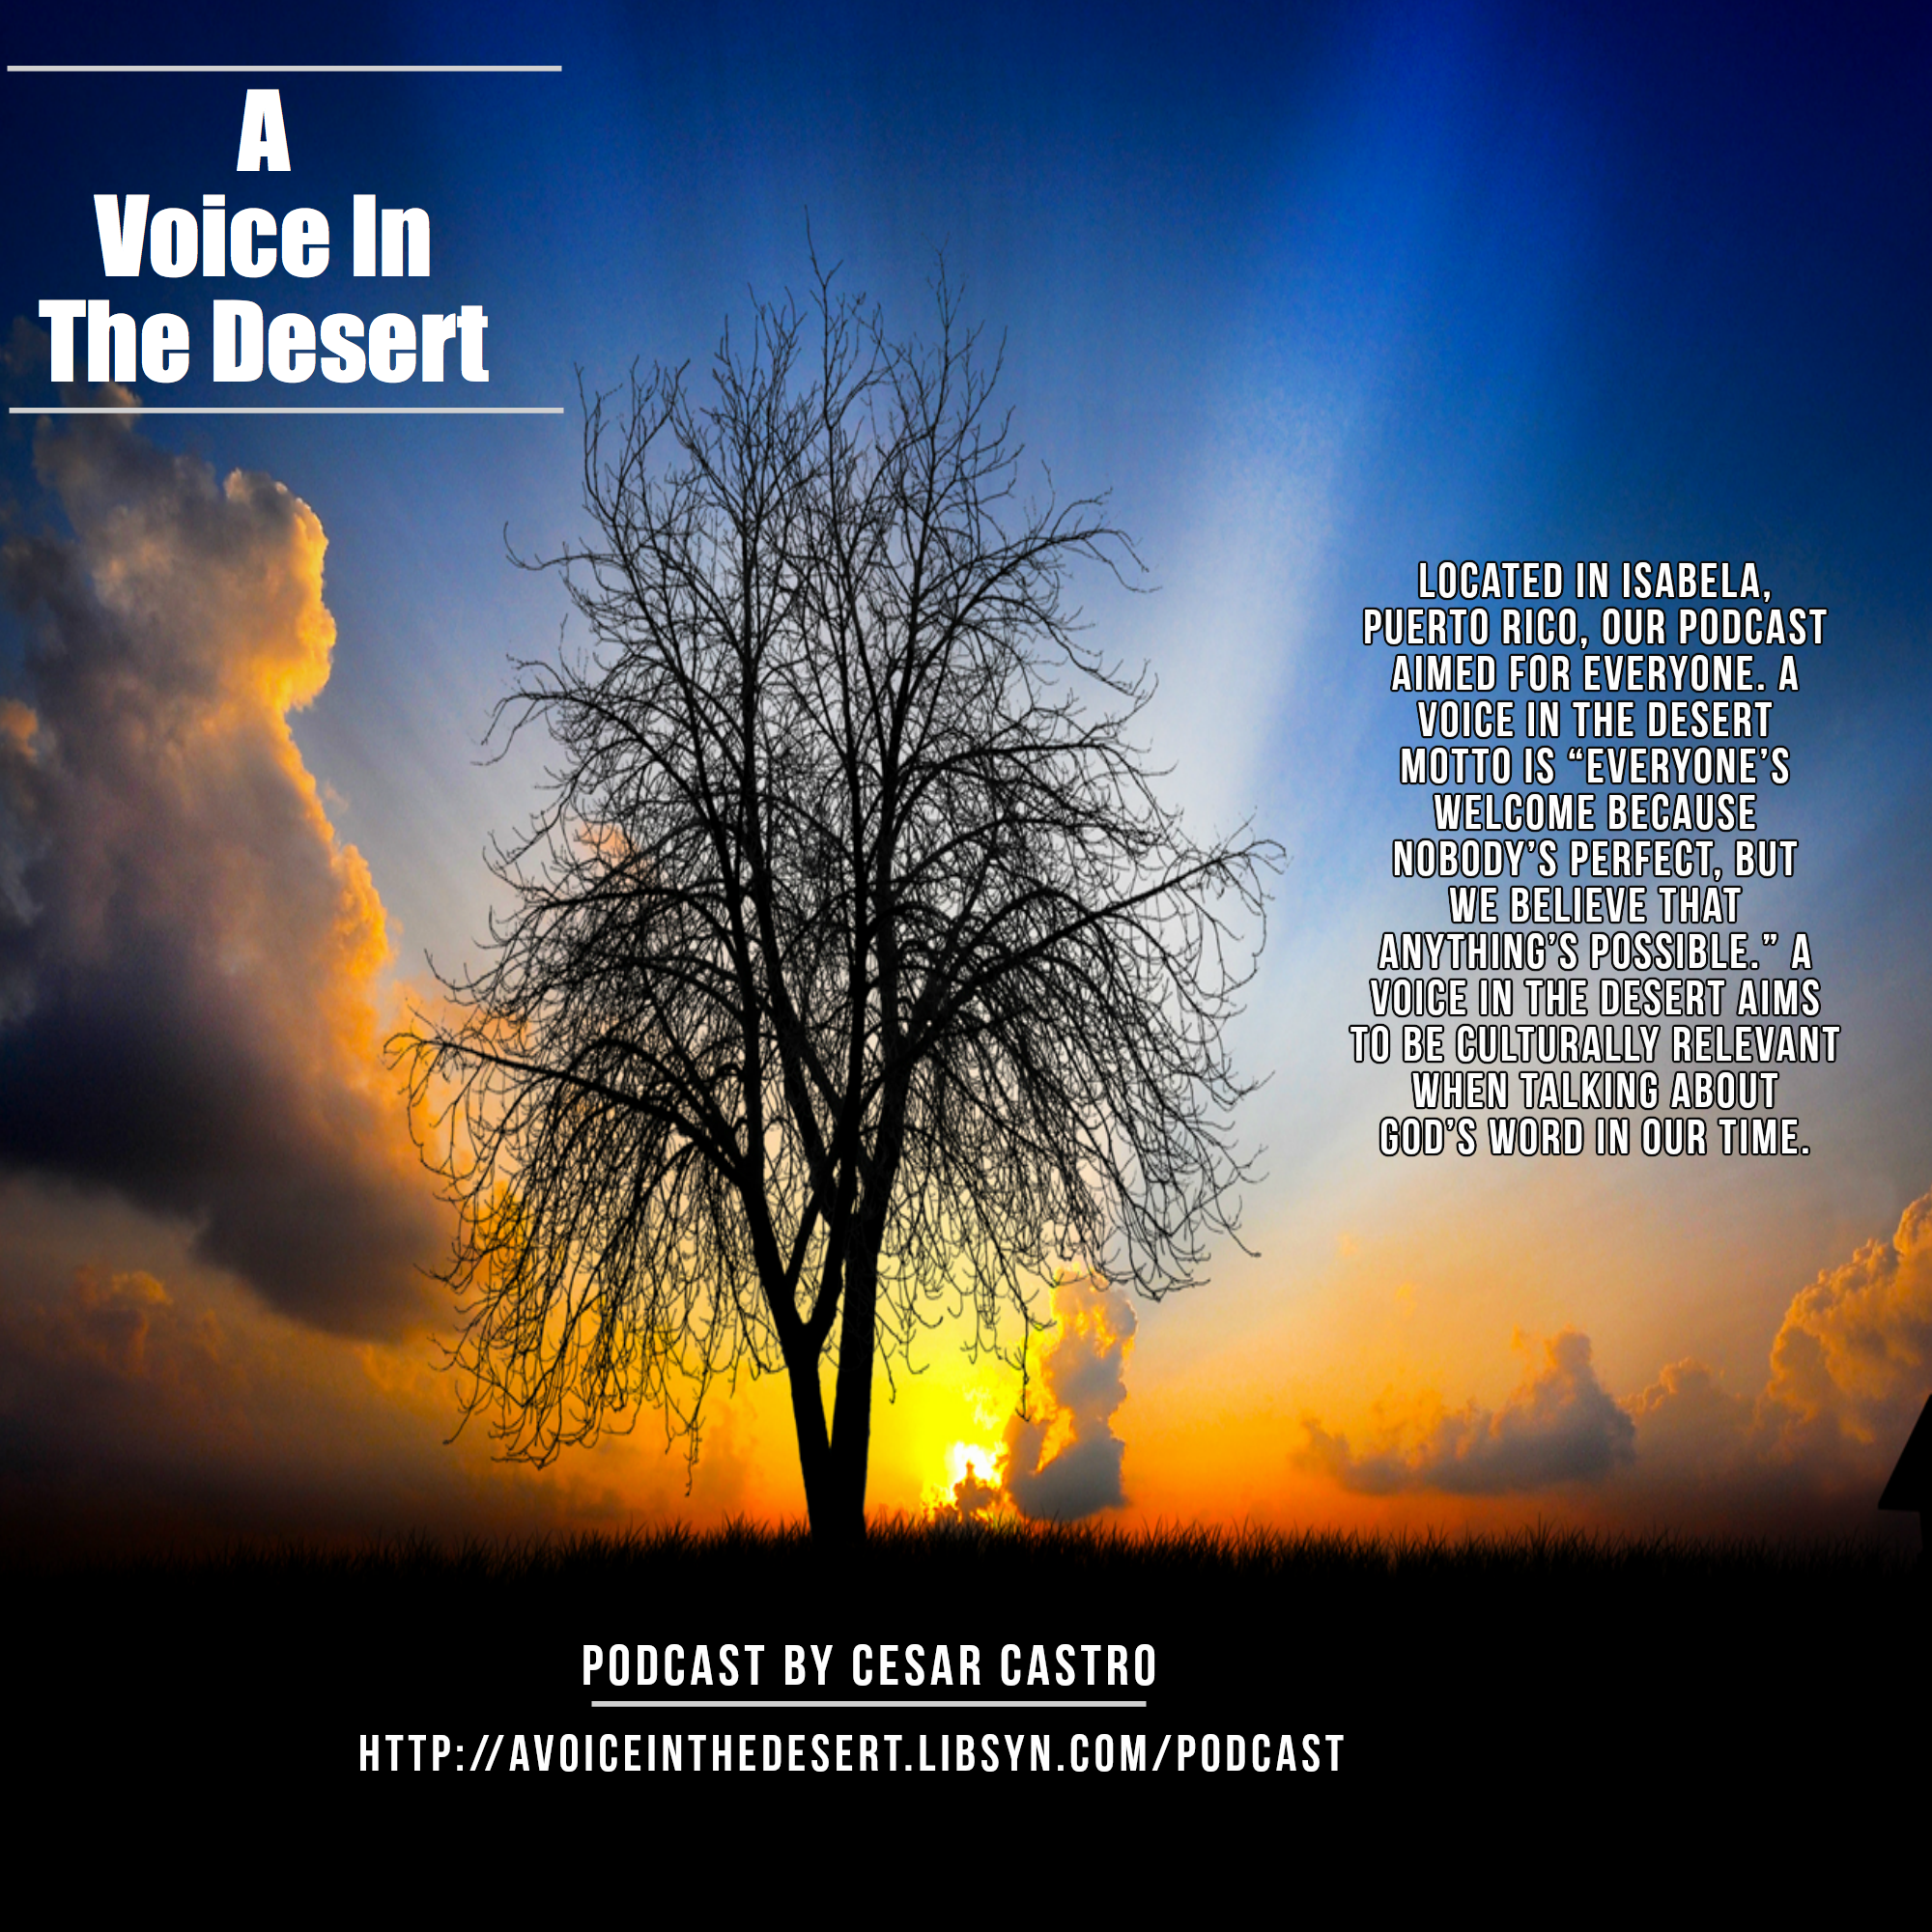 A Voice in The Desert Logo